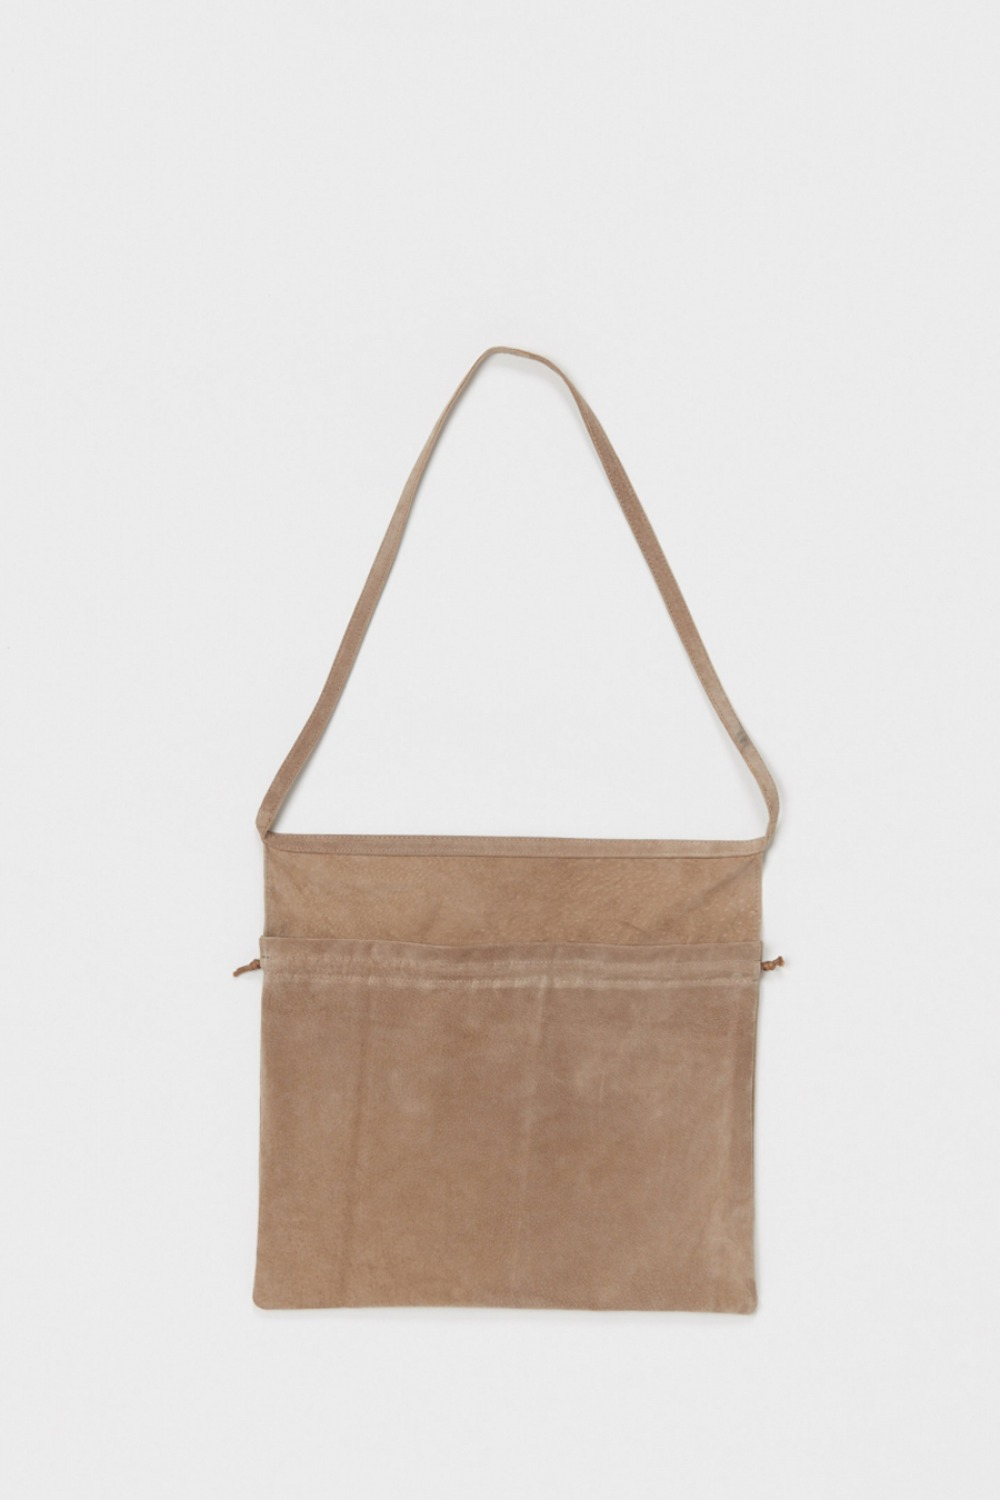 NC-RB-RCS SHOULDER BAG PIG LEATHER BEIGE